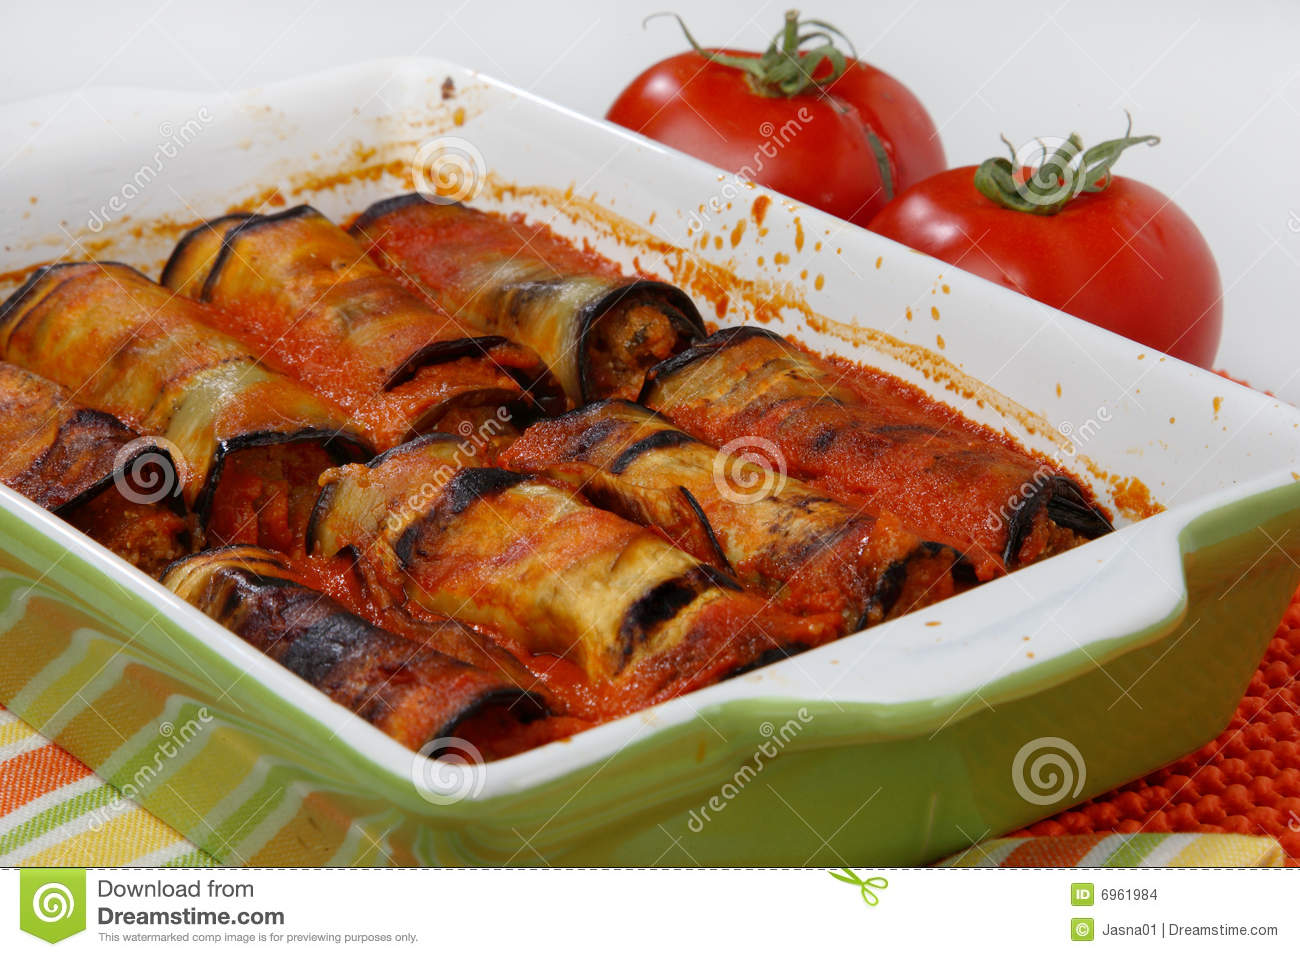 Eggplant rolls filled with meat